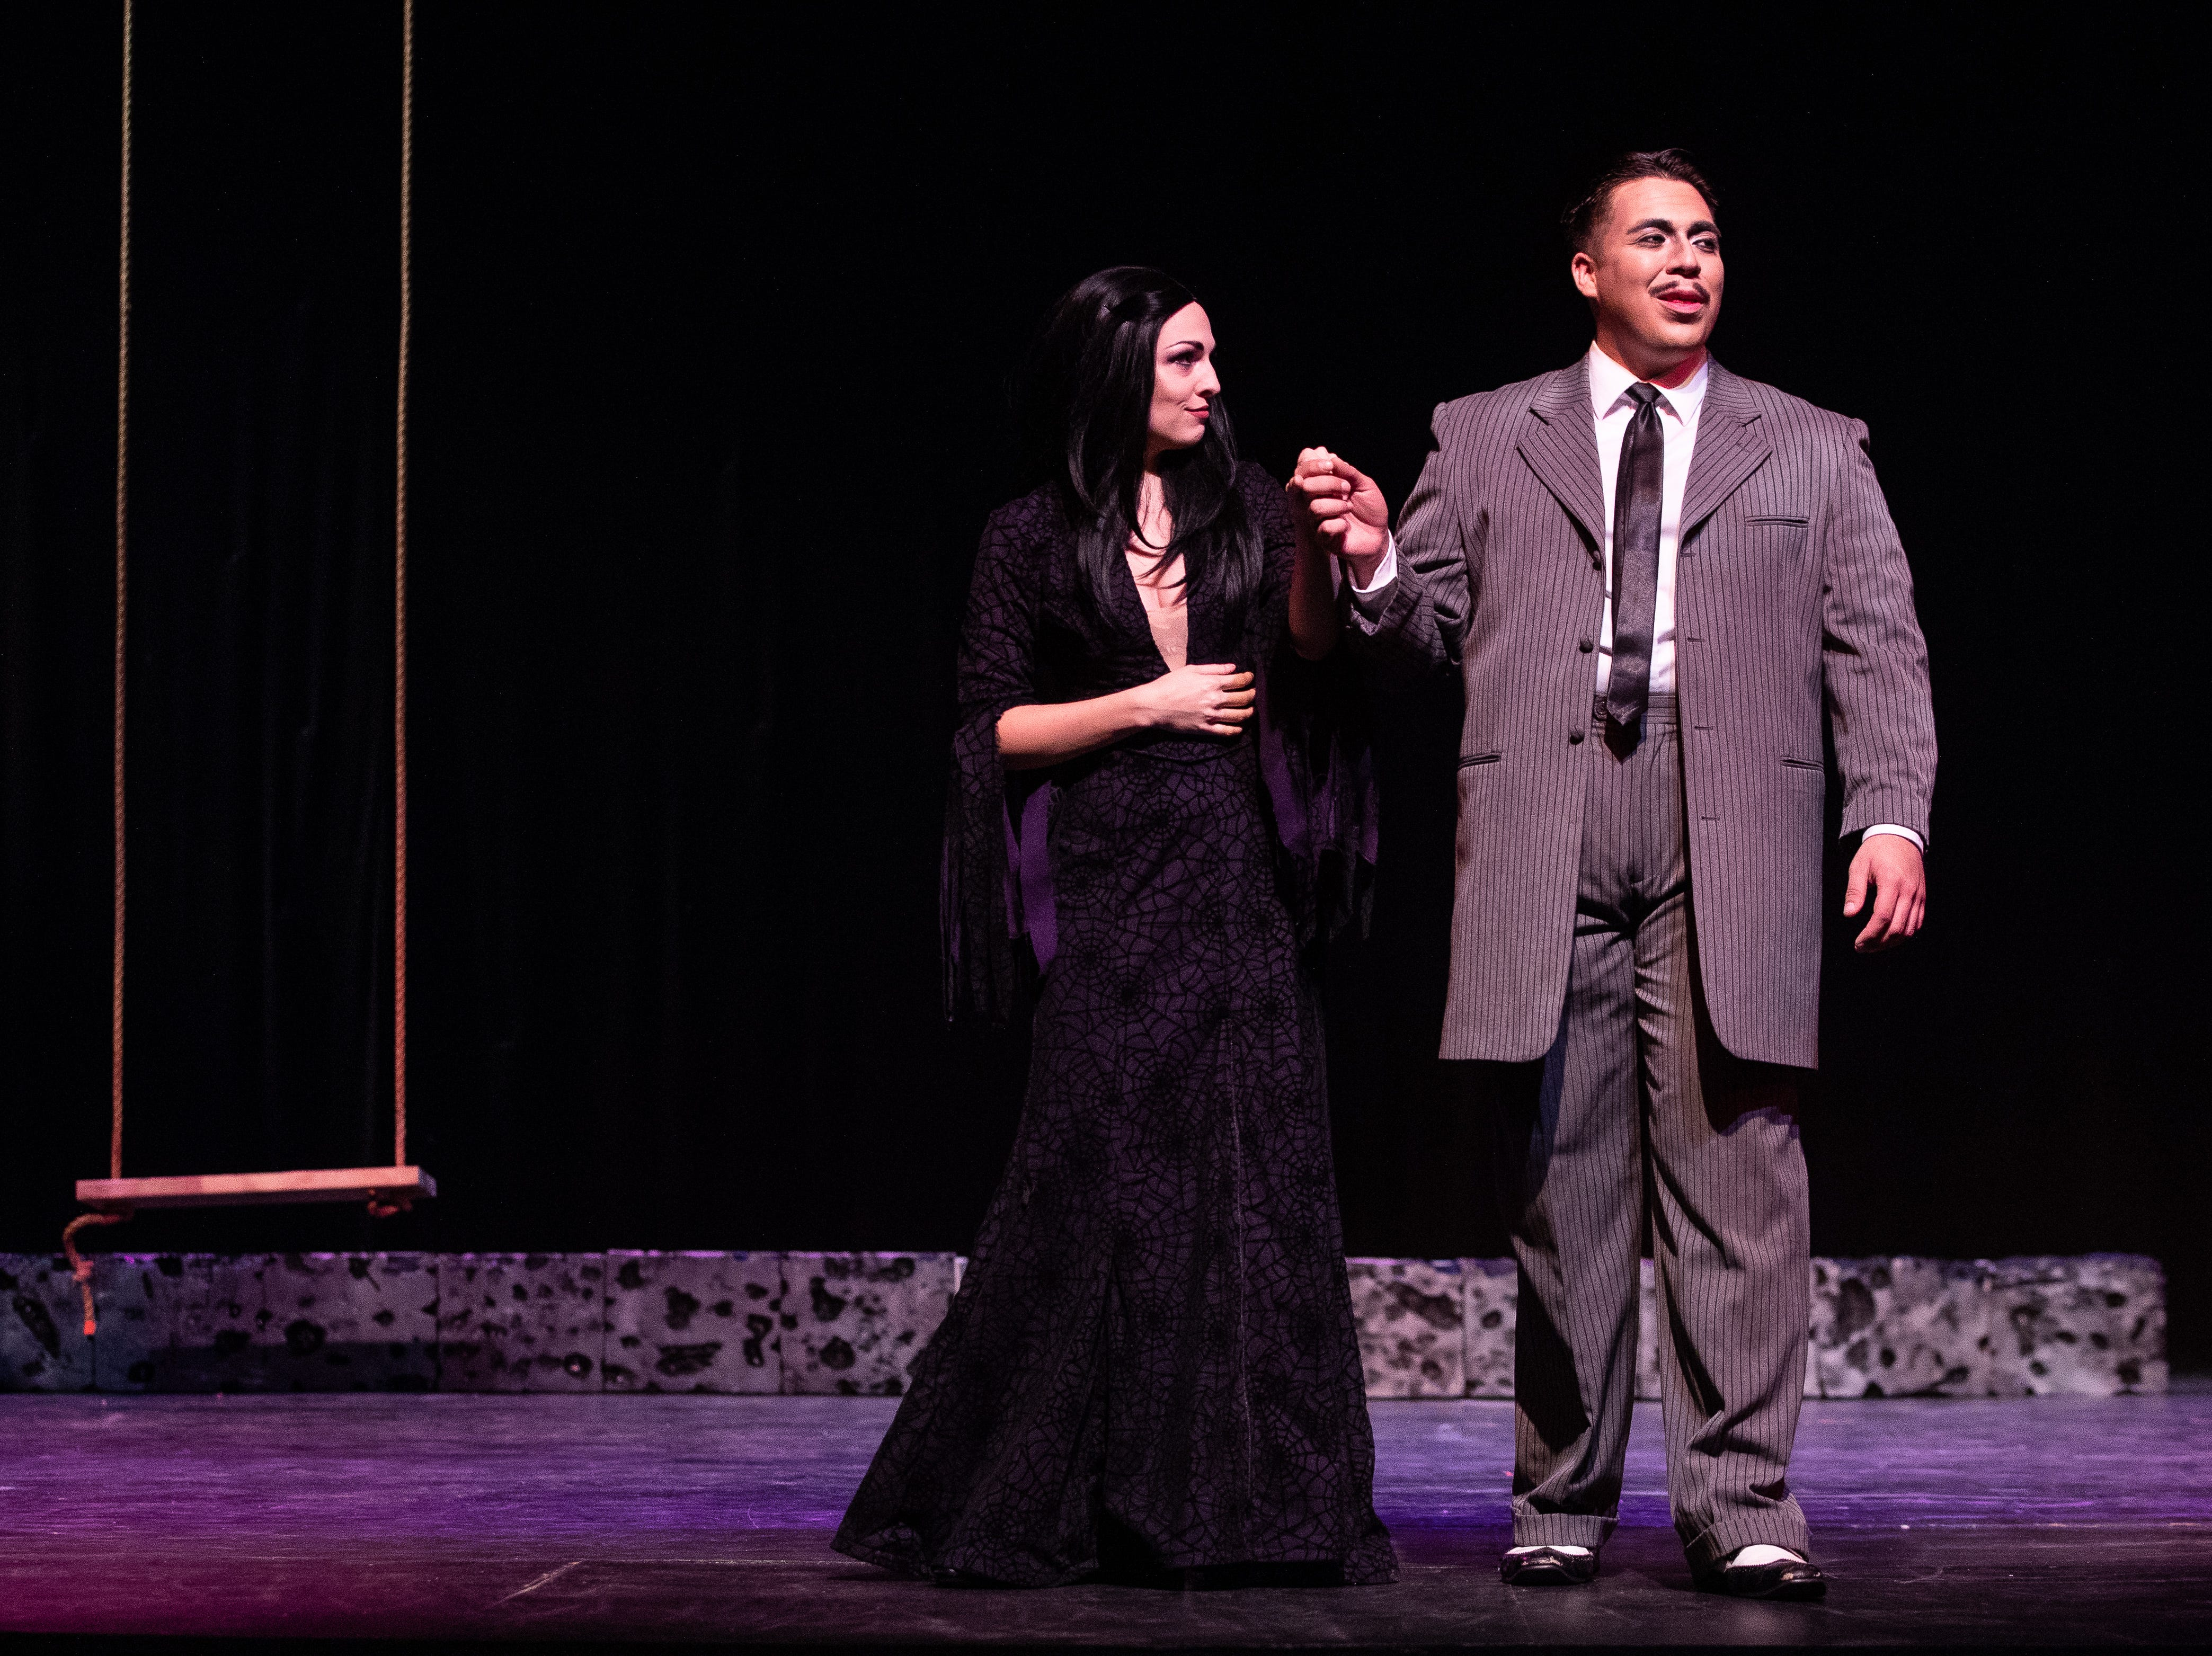 Morticia Addams played by Angela Cirino and  Gomez Addams played by Frank Garcia Jr. in the Harbor Playhouse's production of Addams Family running from Sept. 21 - October 31st.